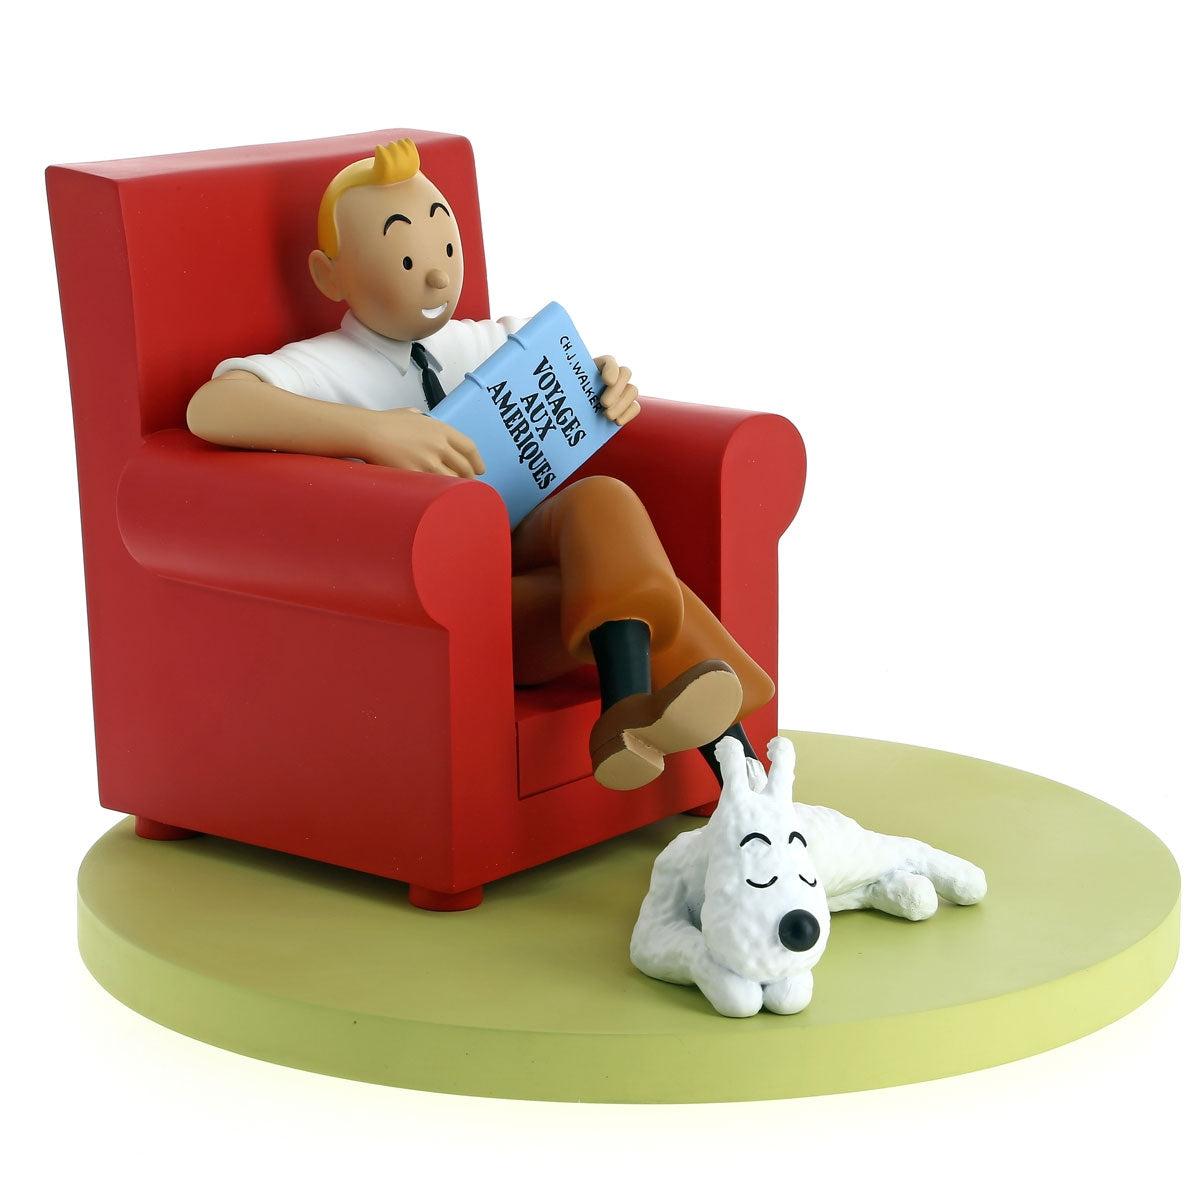 RESIN COLLECTIBLE: Icons - Tintin Red Armchair